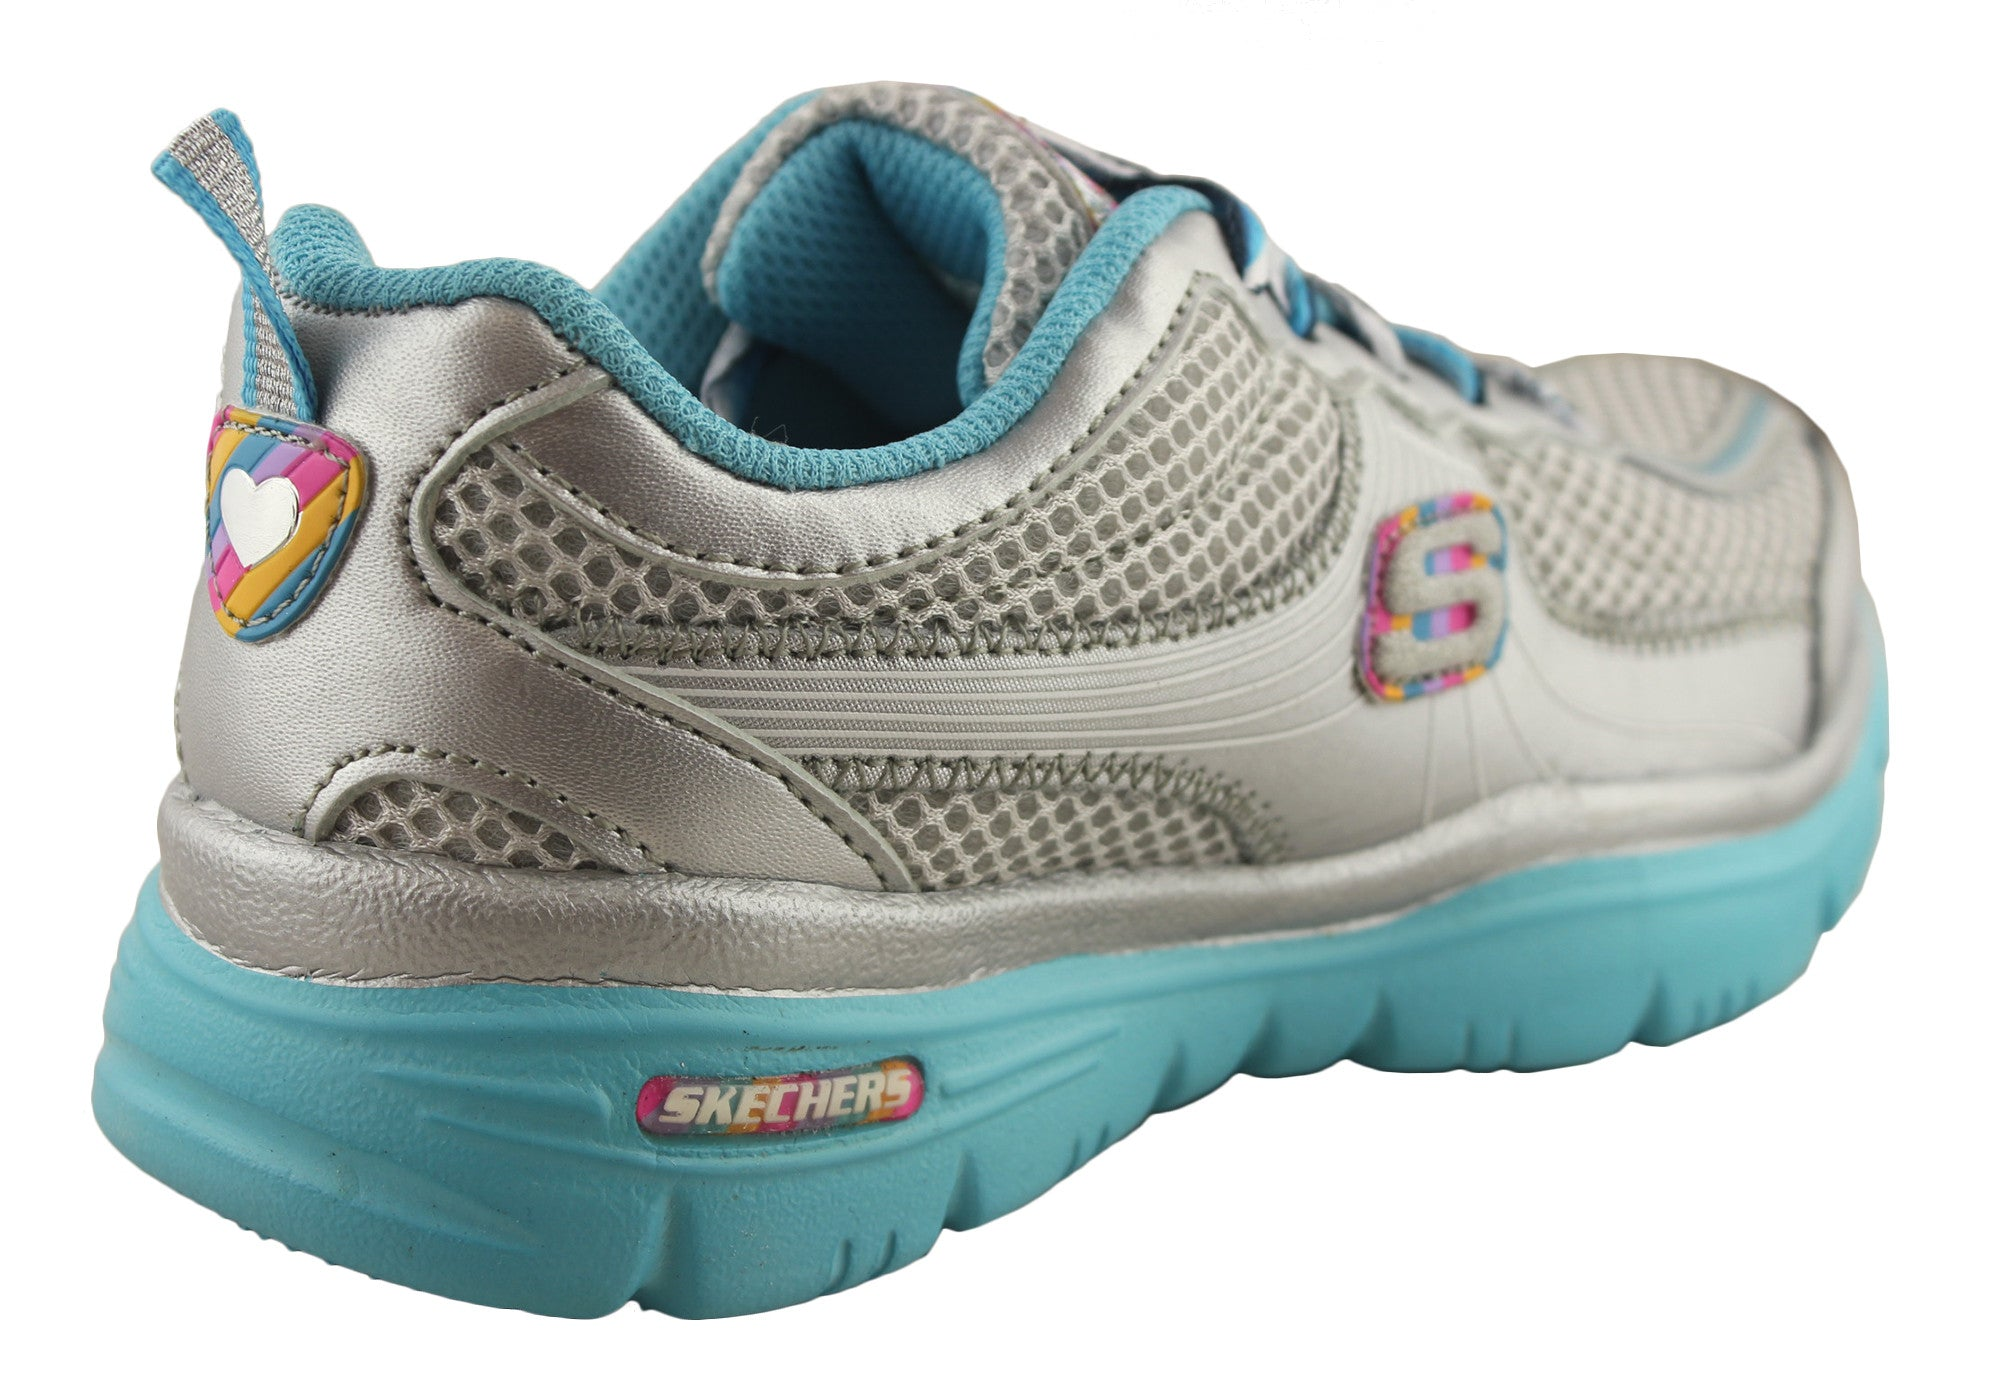 Skechers Lite Sprints Floating Hearts Girls Sneakers